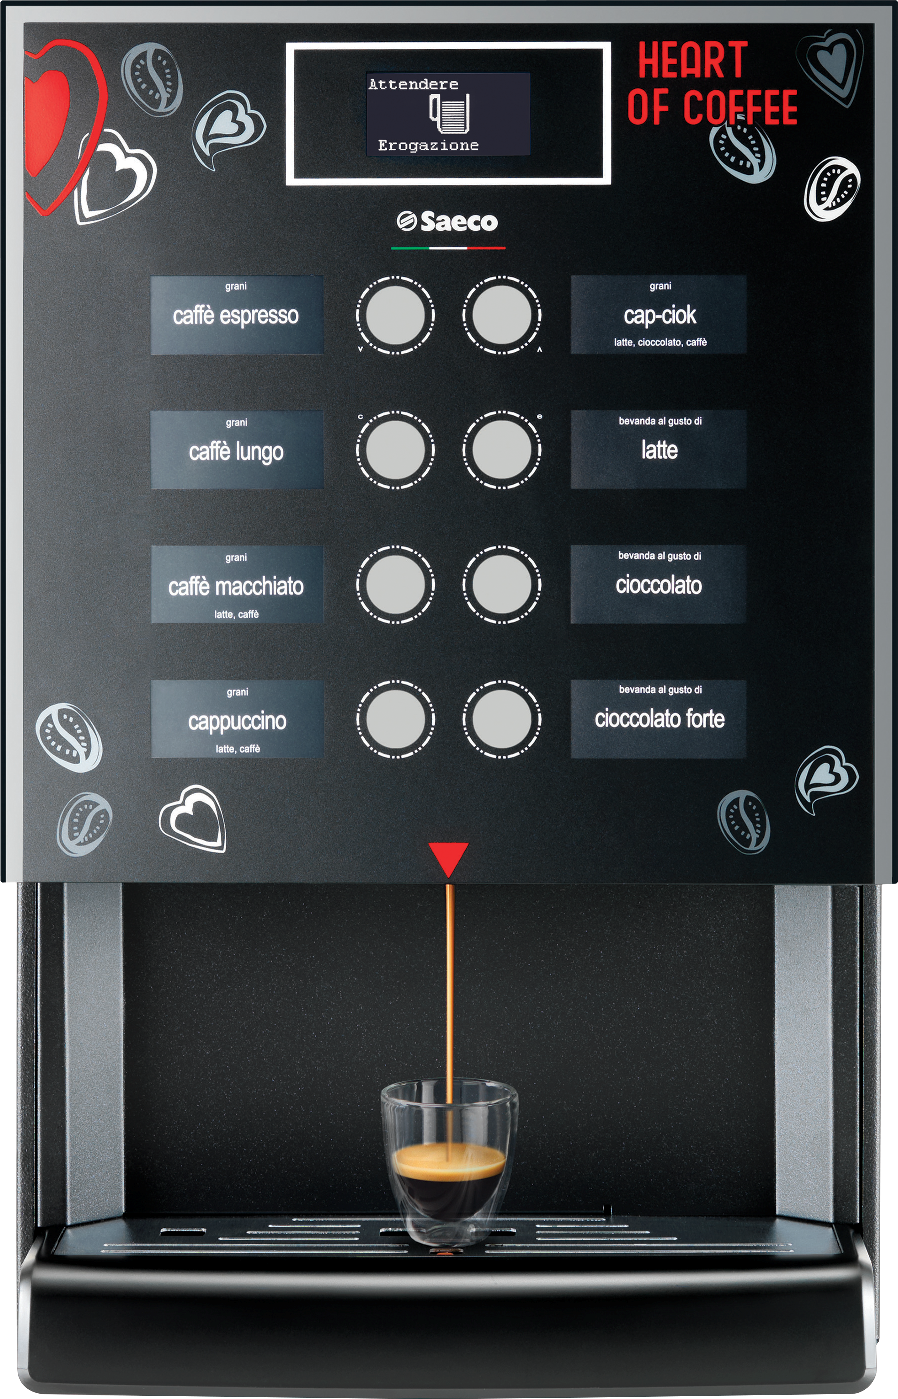 Saeco Iperautomatica Table Top Coffee Machine The Coffee Scent